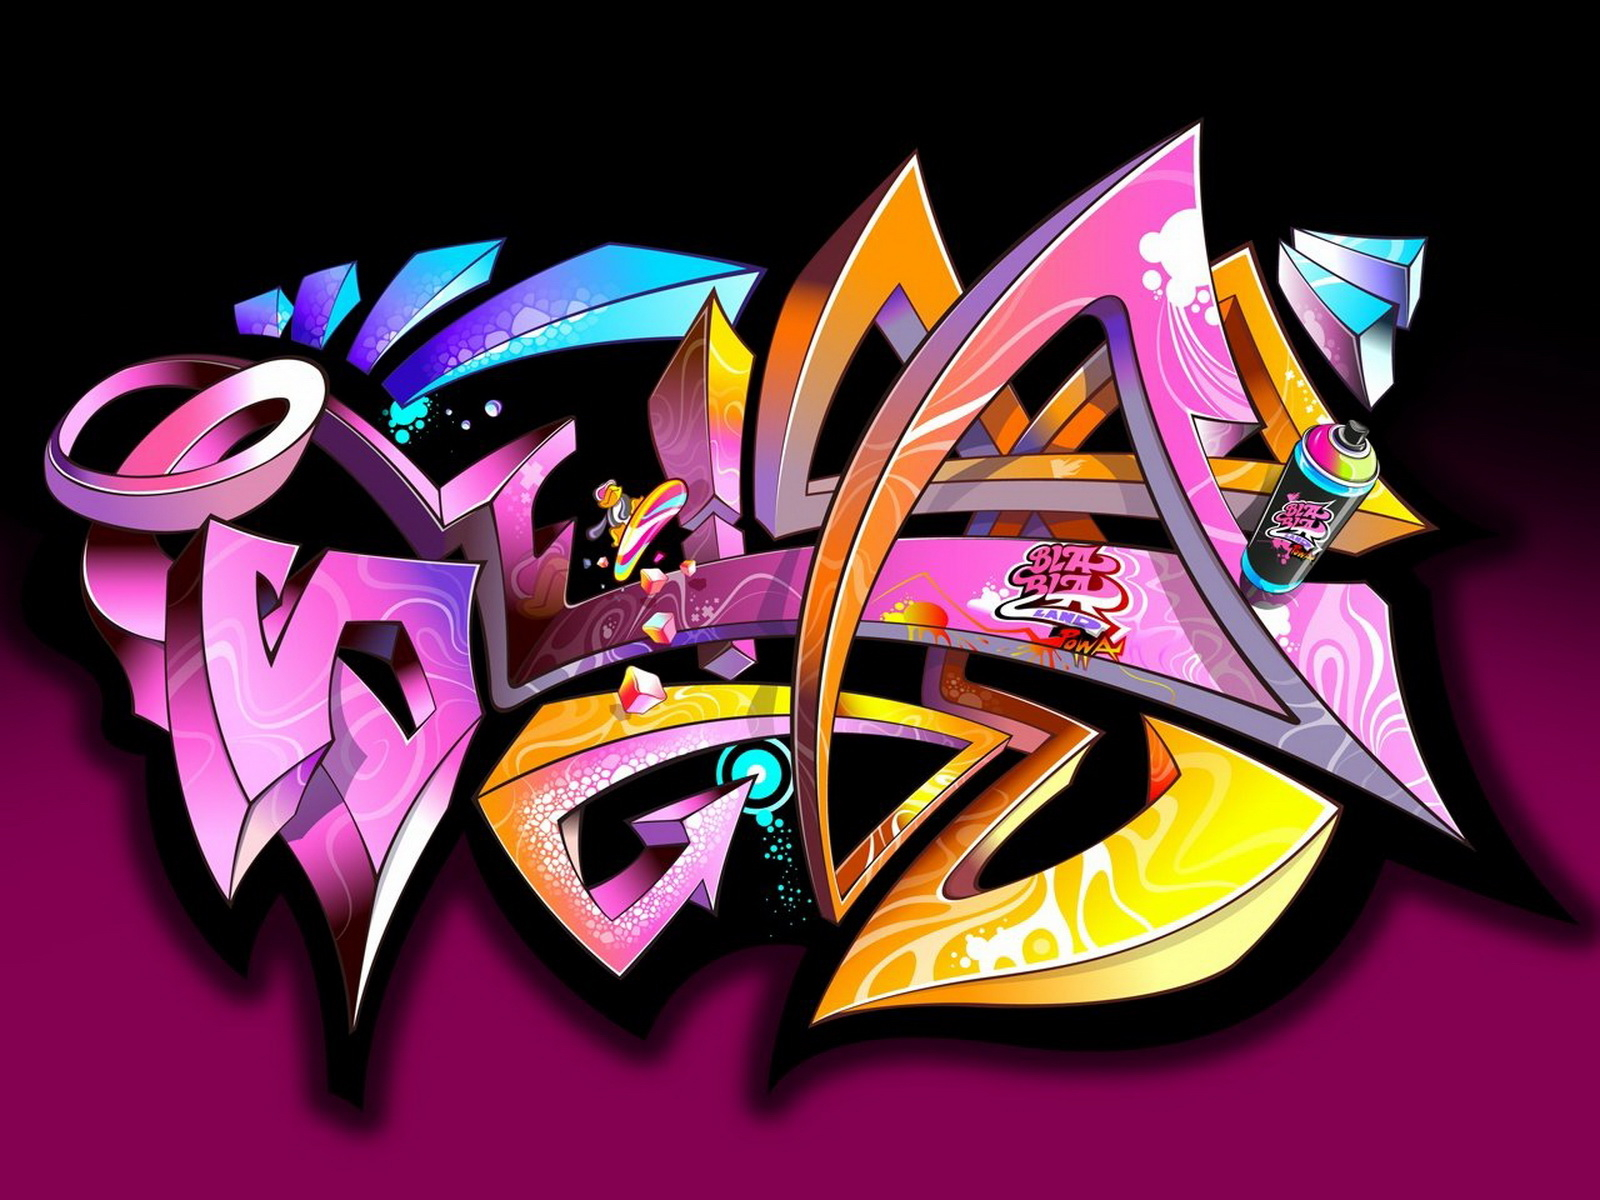 awesome graffiti widescreen full hd wallpaper